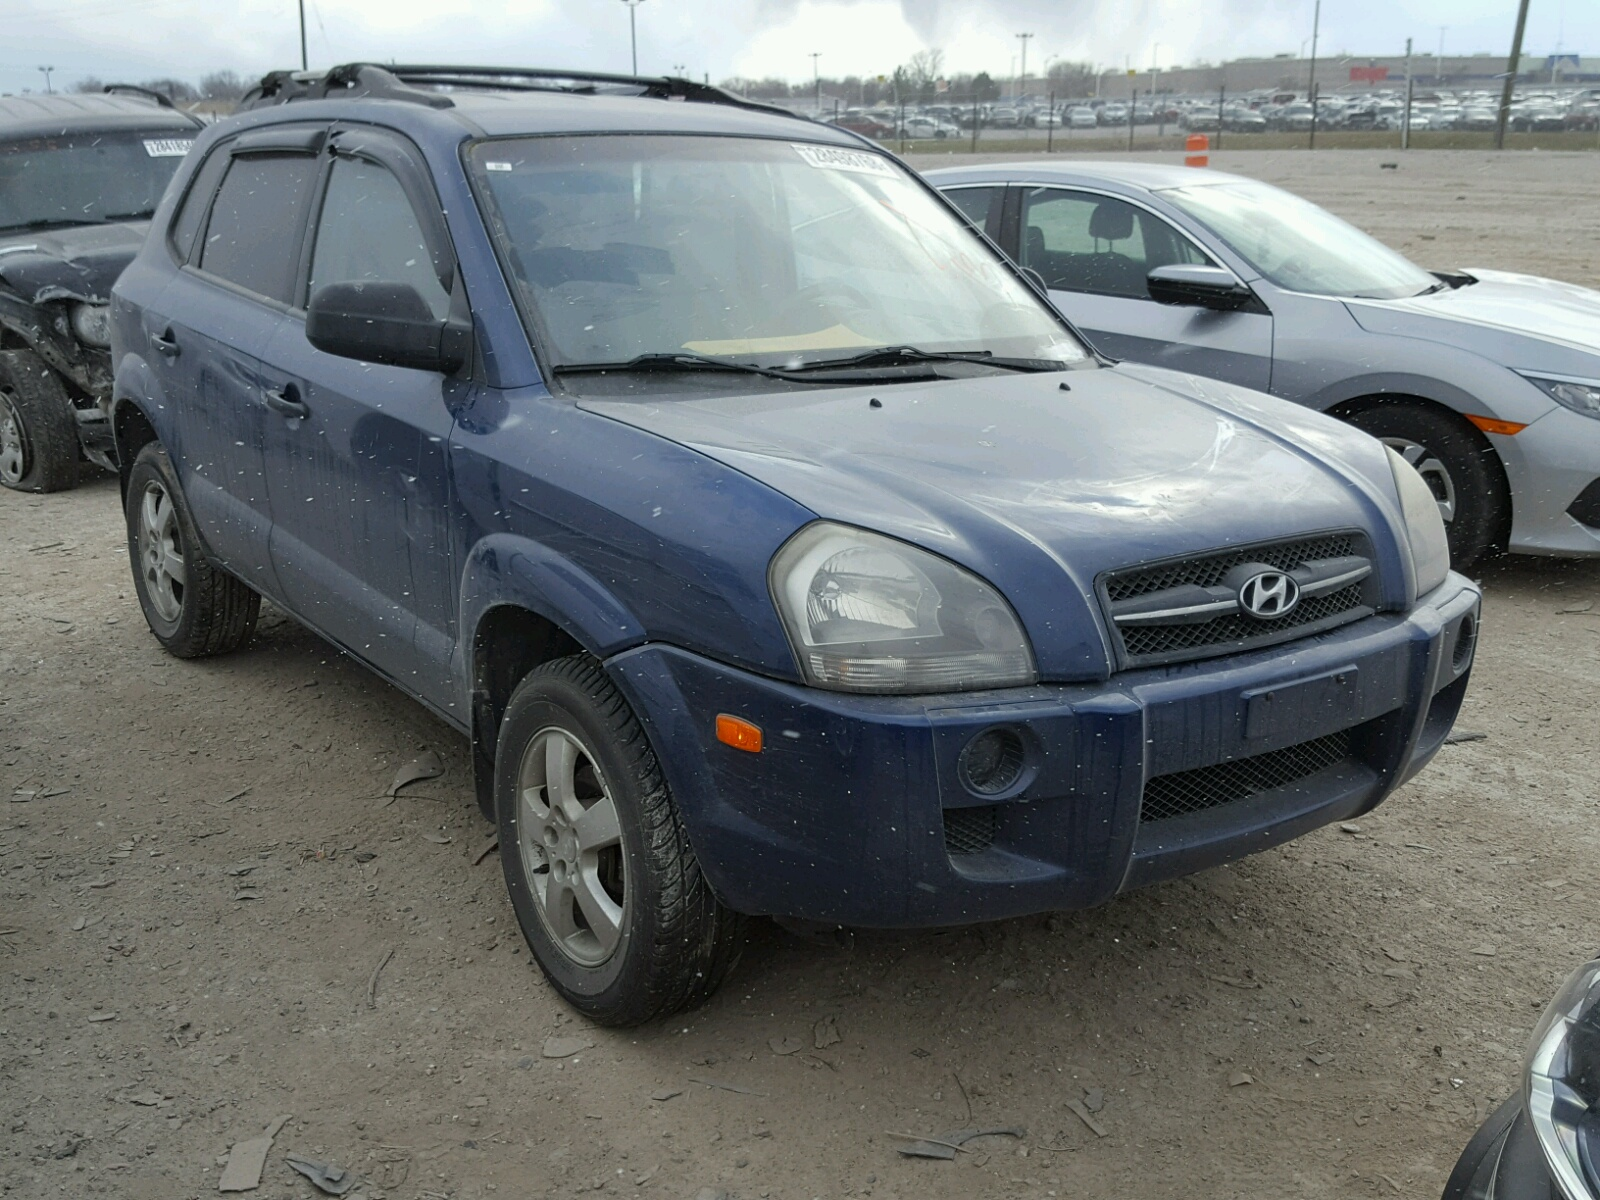 cert title s online fe in indianapolis hyundai red copart auctions on santa en lot of sale auto salvage carfinder